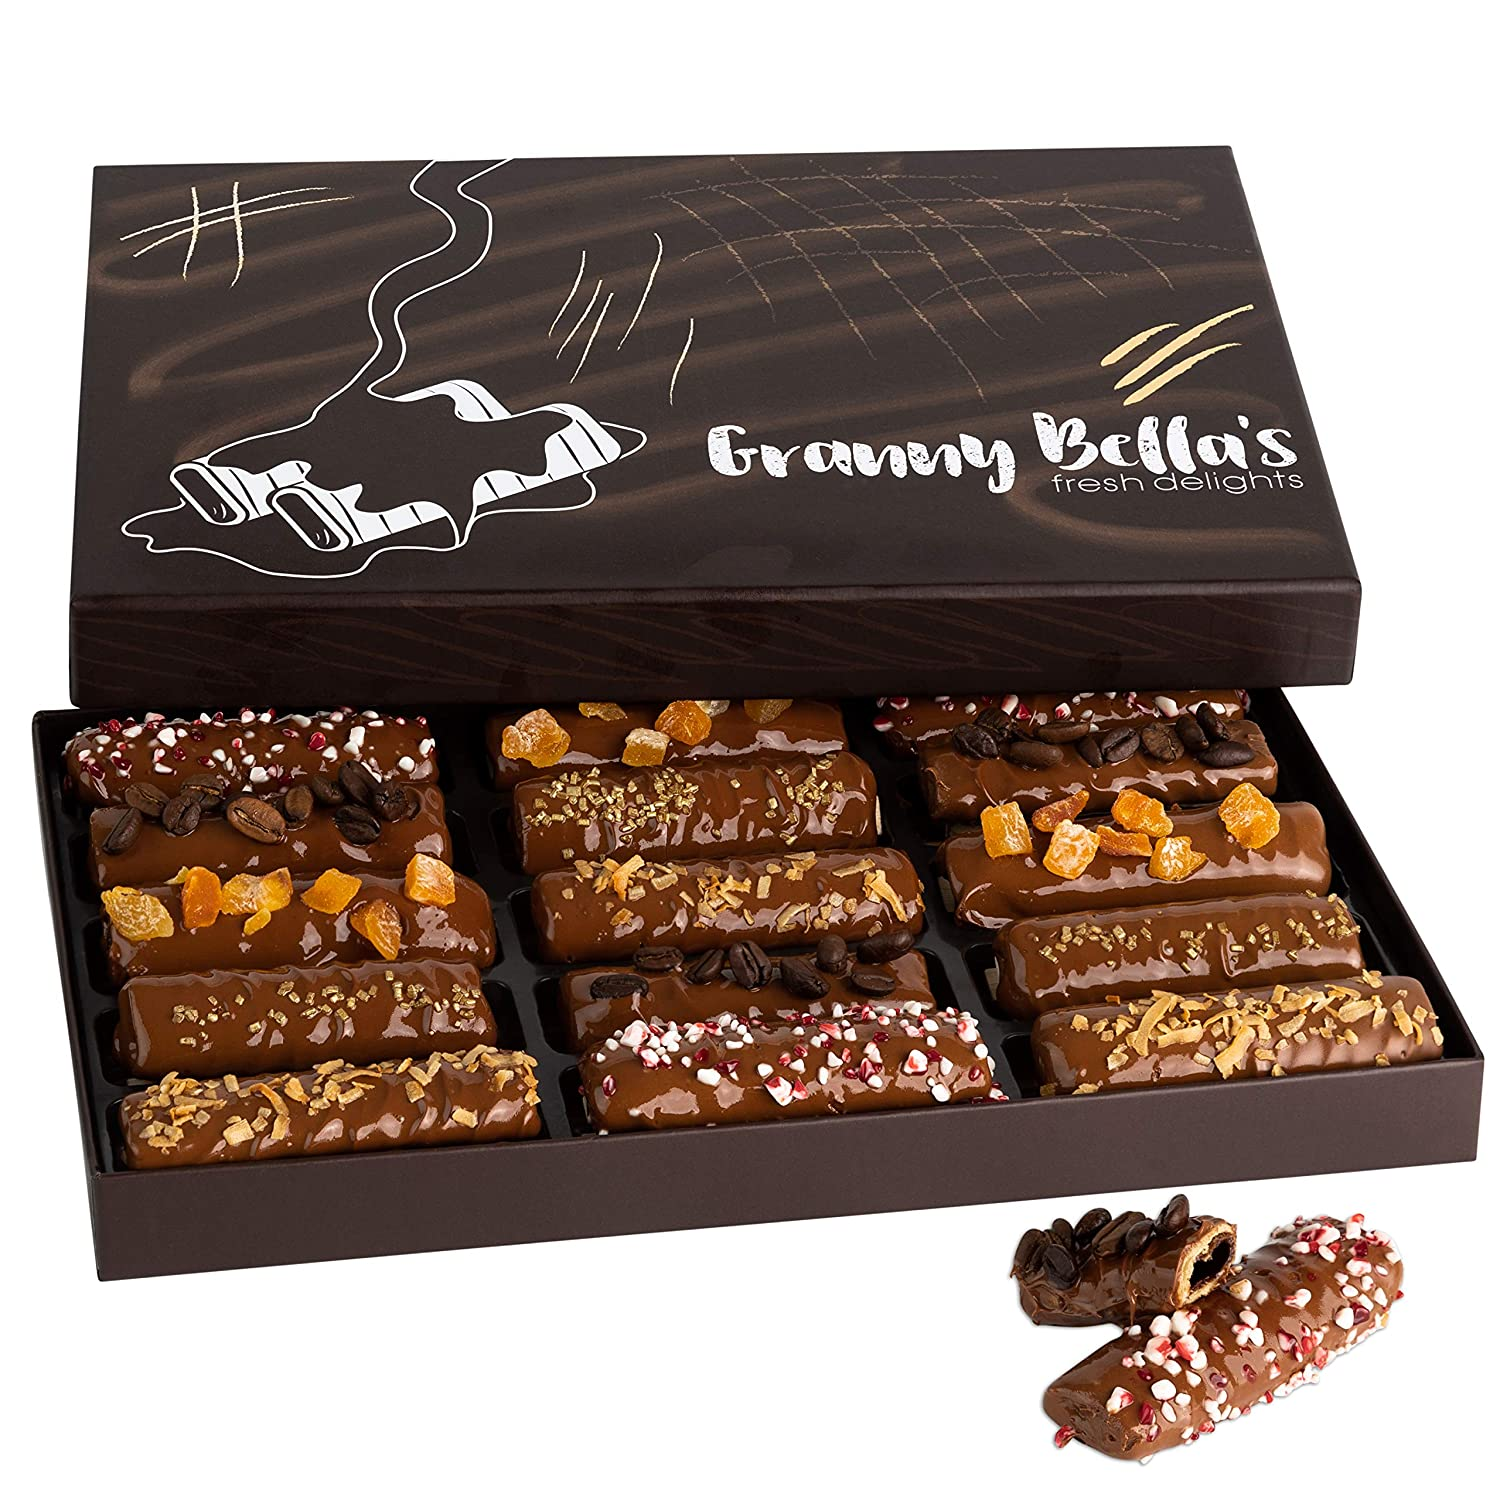 Granny Bella's Gourmet Chocolate Dipped Wafers | 15 Cookies Filled with Hazelnut Cream | Food Sweets Gift Baskets | Prime Holiday, Christmas & Valentines Day Gifts | Birthday Treats for Men & Women